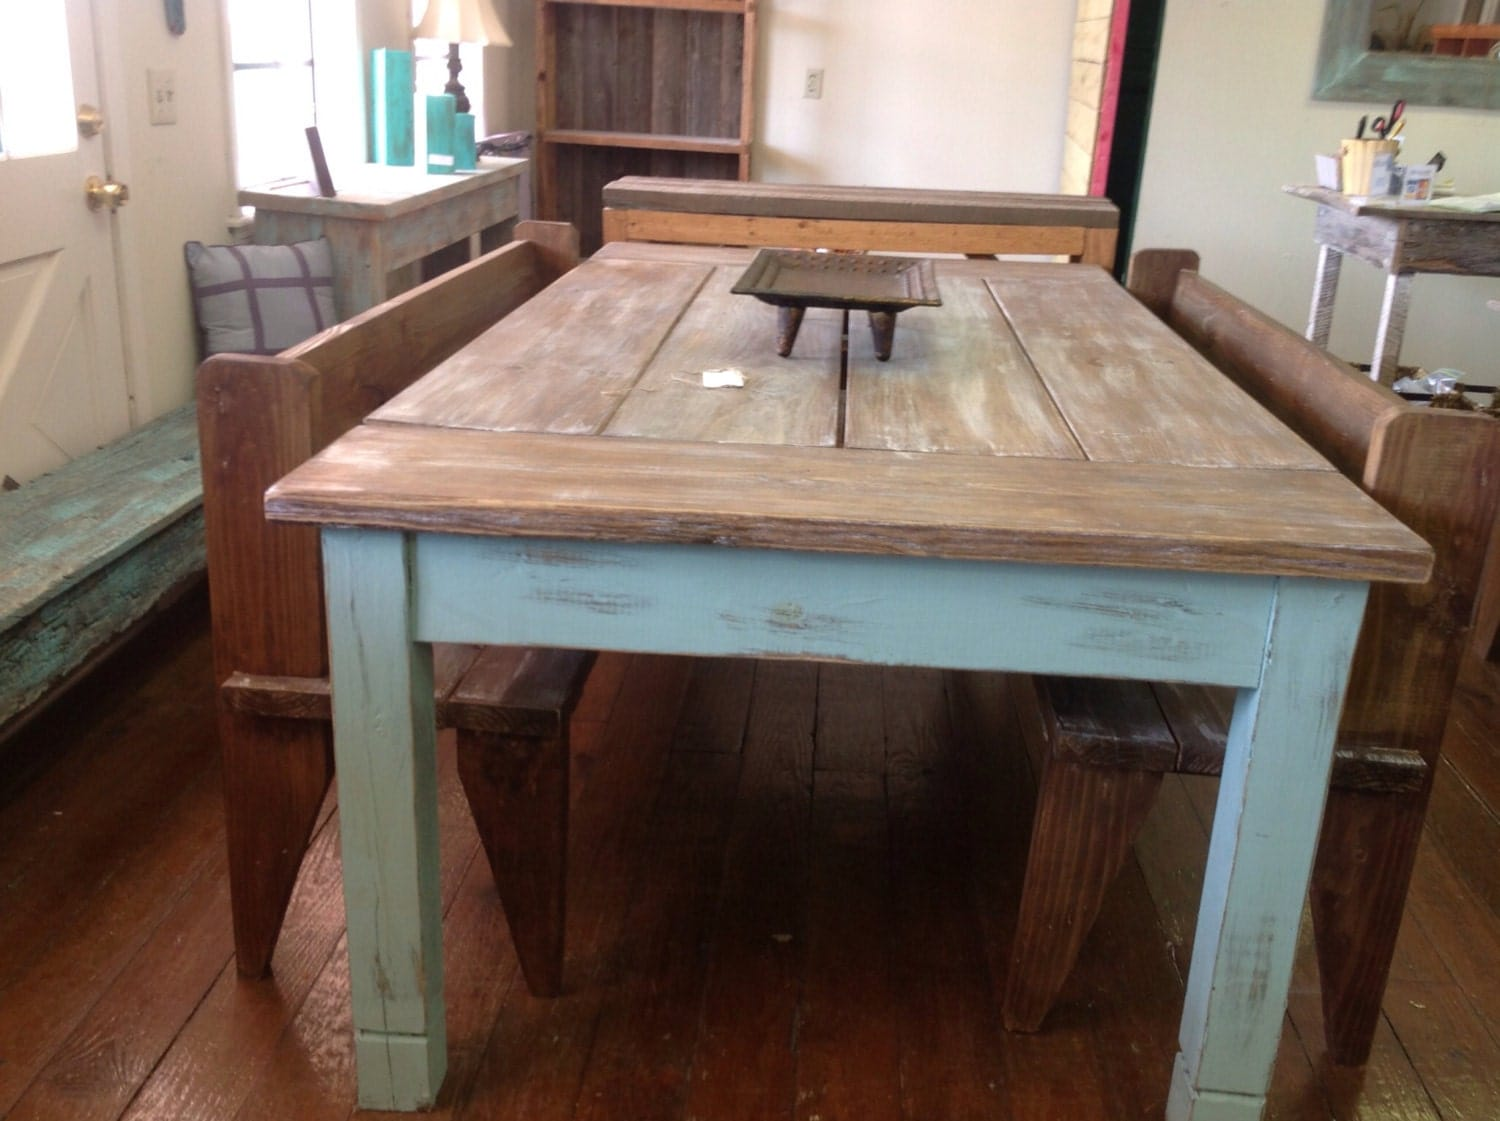 Large Farmhouse Table By DyesDesign On Etsy